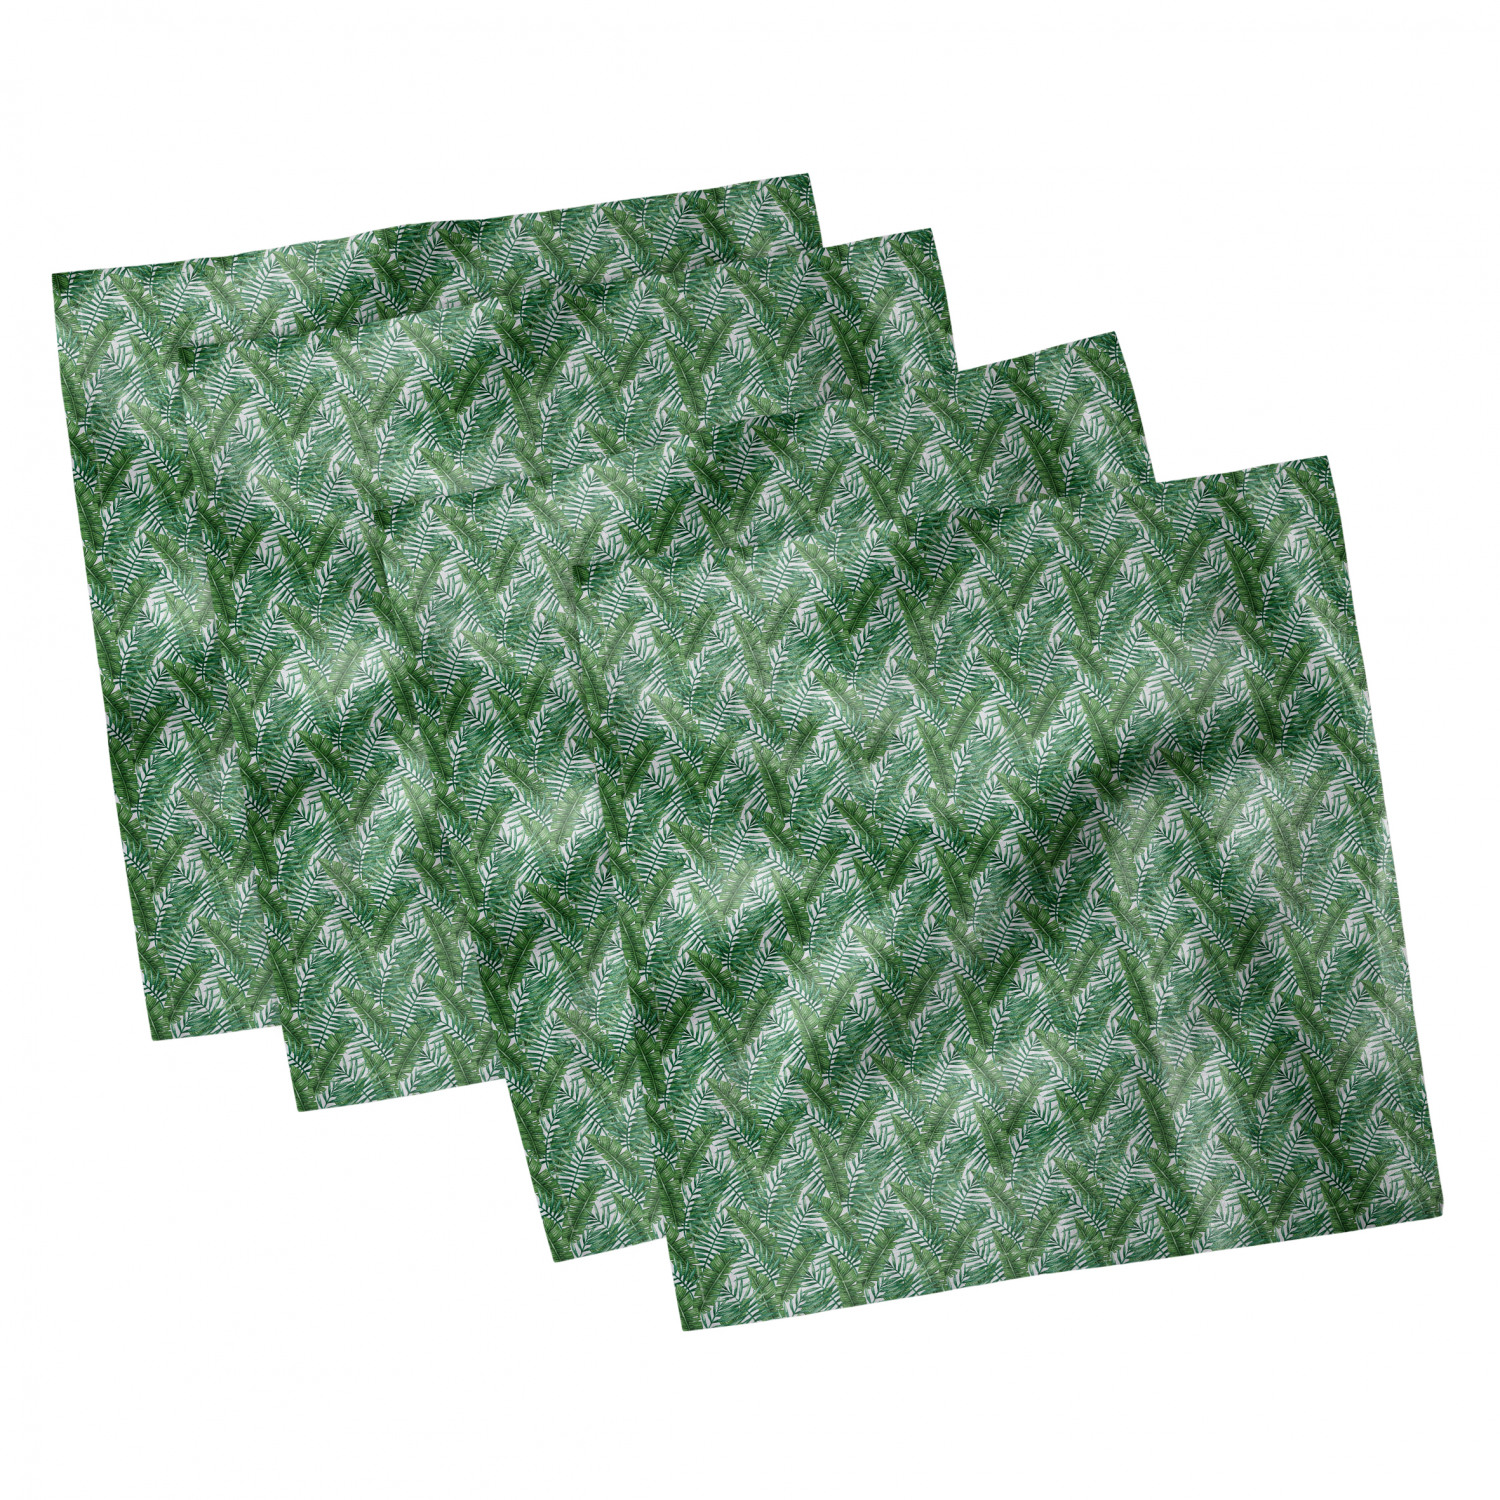 thumbnail 45 - Ambesonne-Leaves-Forest-Decorative-Satin-Napkins-Set-of-4-Party-Dinner-Fabric